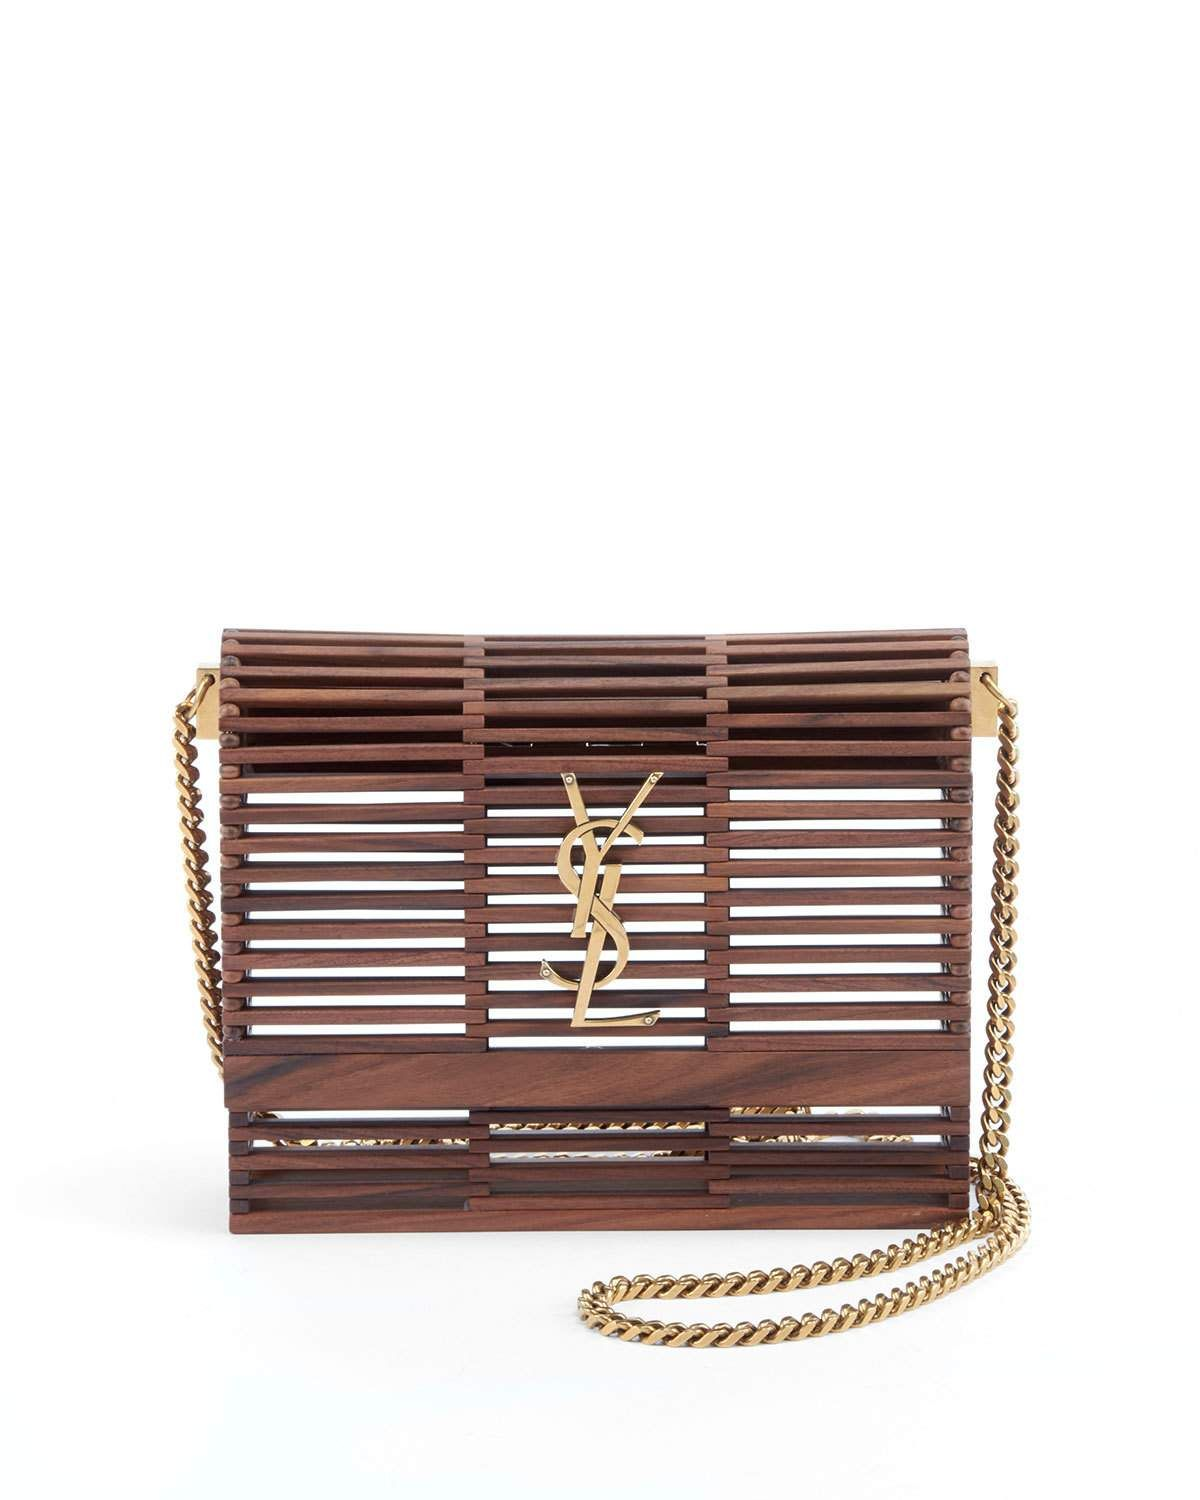 5a44eba0c81 Saint Laurent Small Kate Wooden Weave Box Bag in 2019 | Shoes and ...